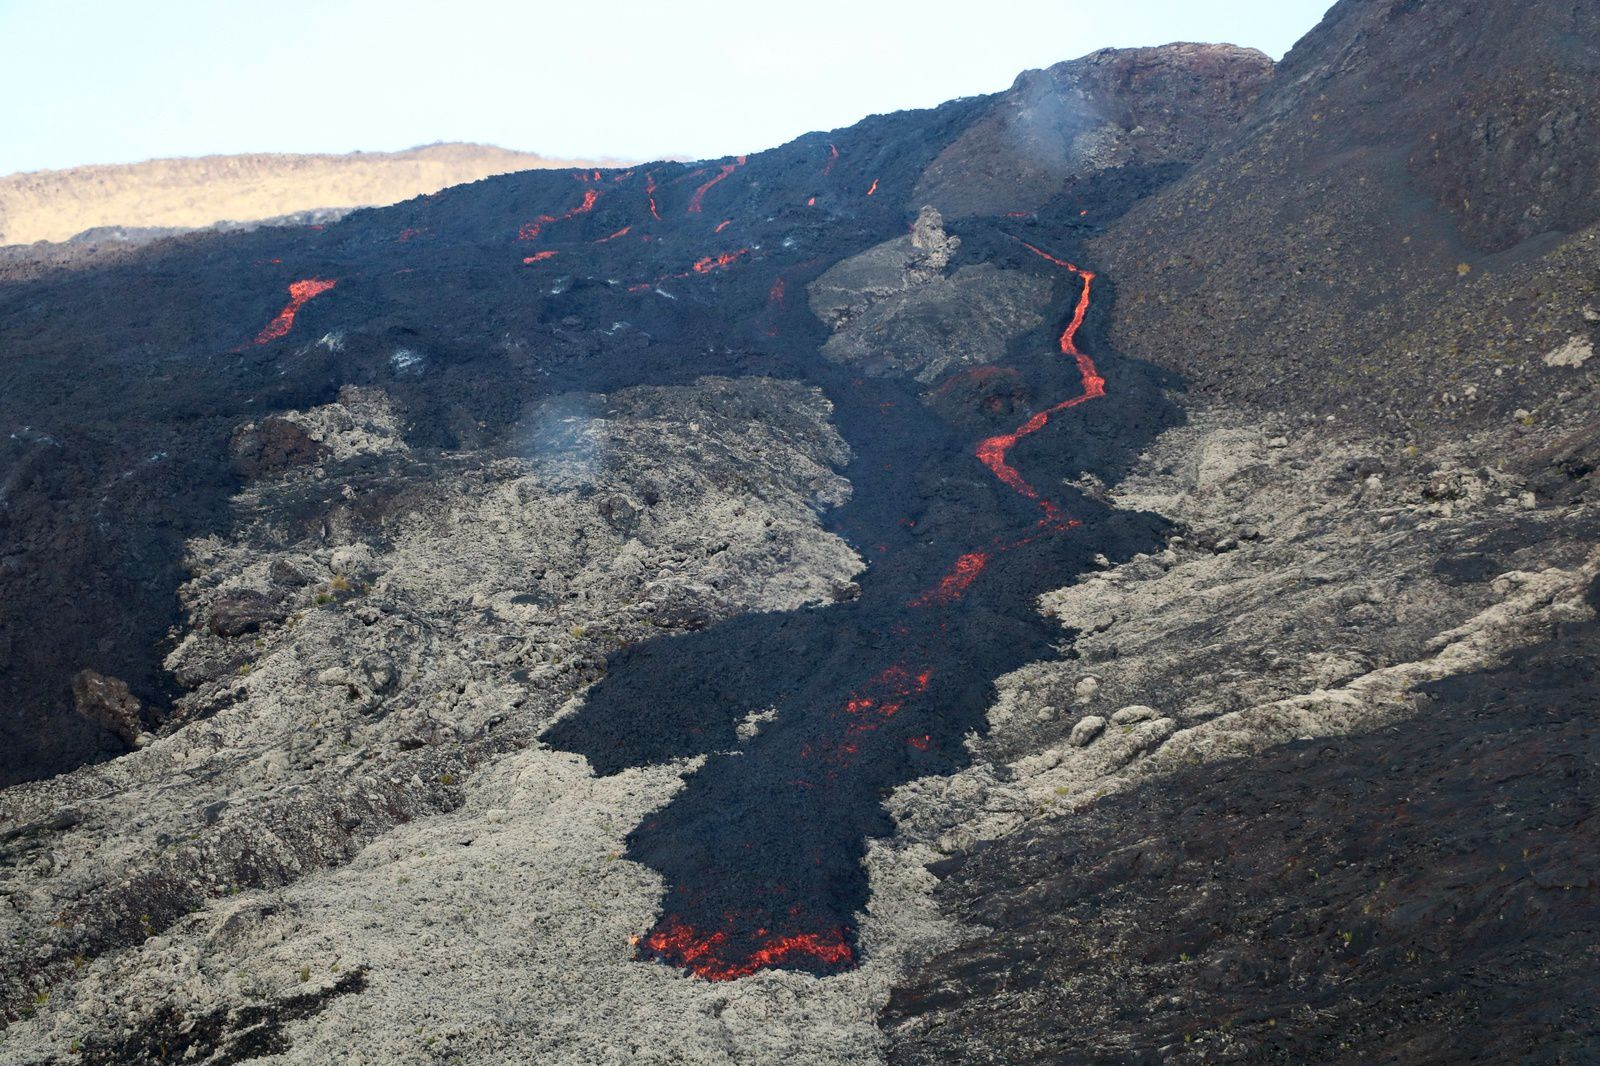 Piton de La Fournaise - the lava flows arms during the field visit of 05.03.2019 - OVPF photos